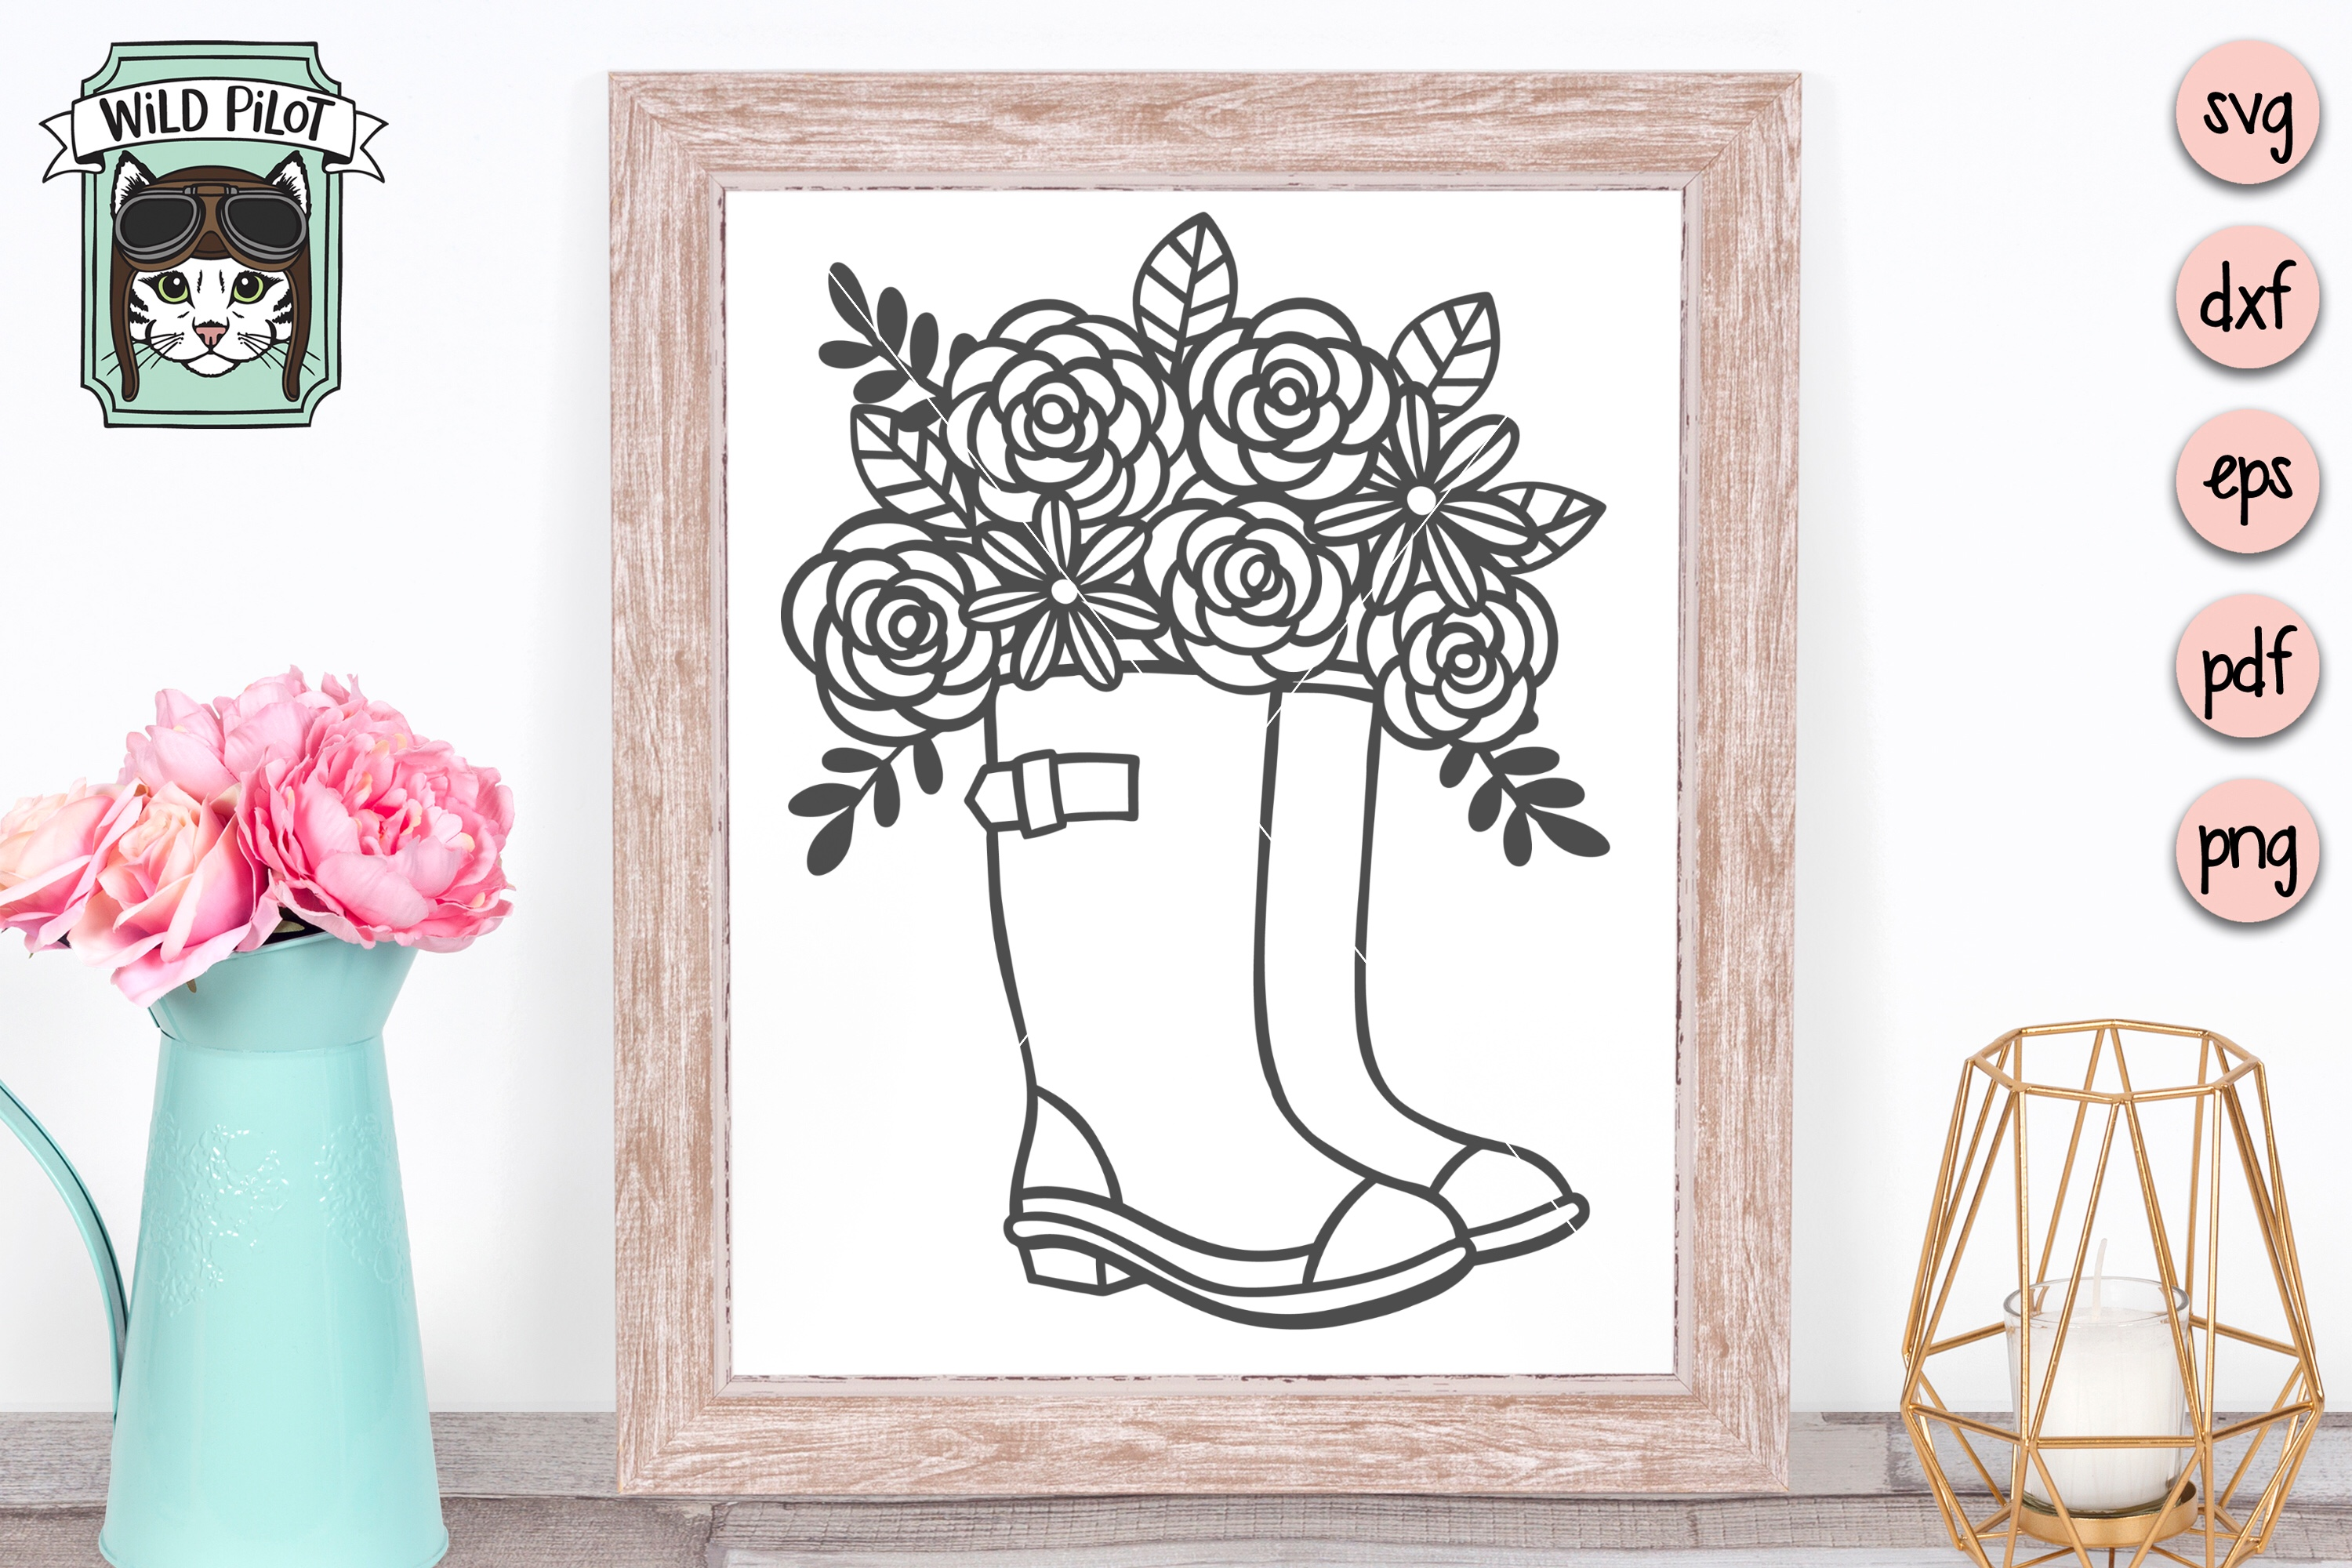 Rain boots svg file, Boots with flowers, Wellies cut file example image 3